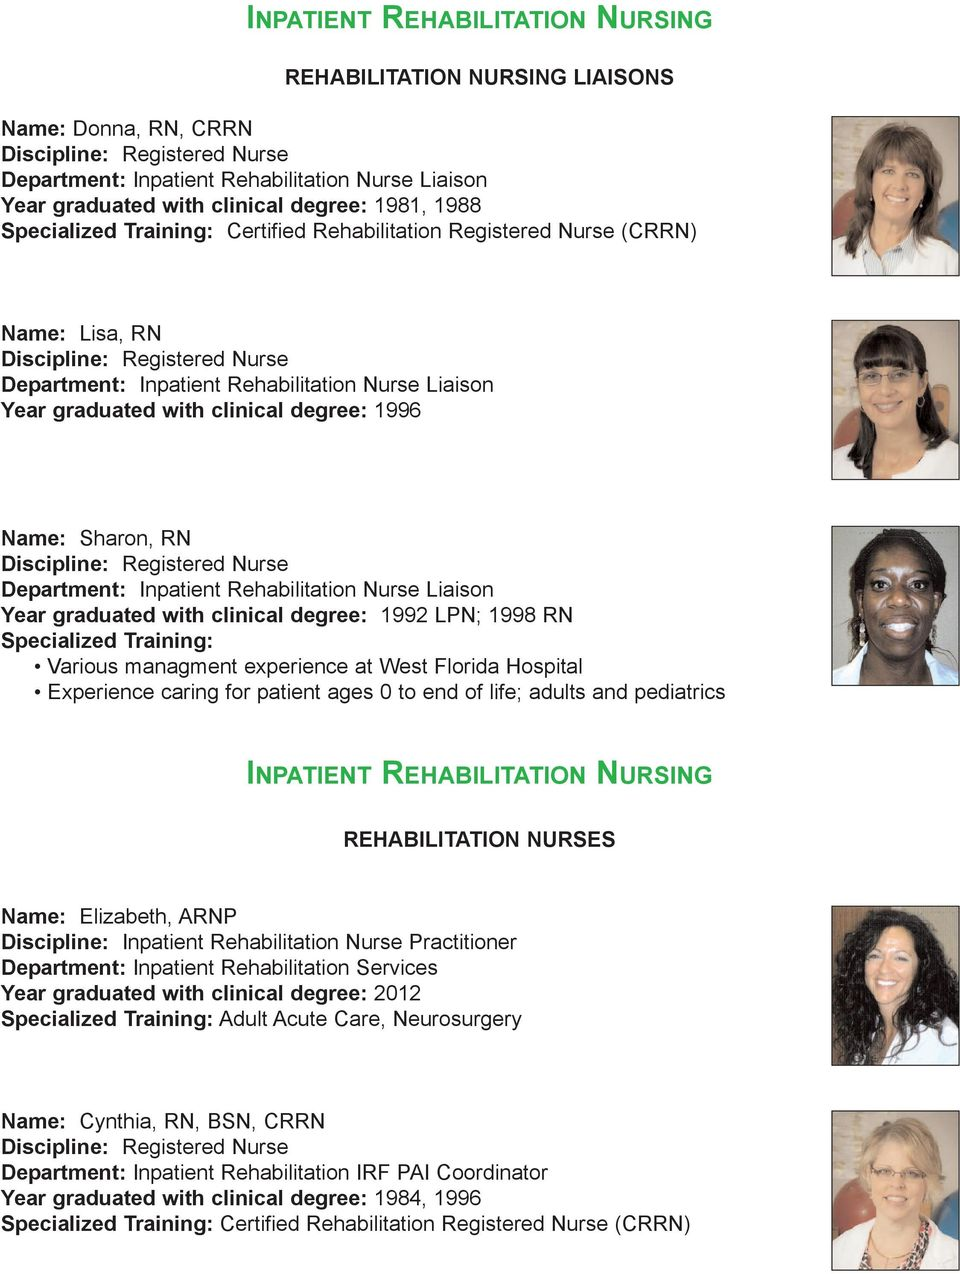 Rehabilitation Nurse Liaison Year graduated with clinical degree: 1992 LPN; 1998 RN Various managment experience at West Florida Hospital Experience caring for patient ages 0 to end of life; adults